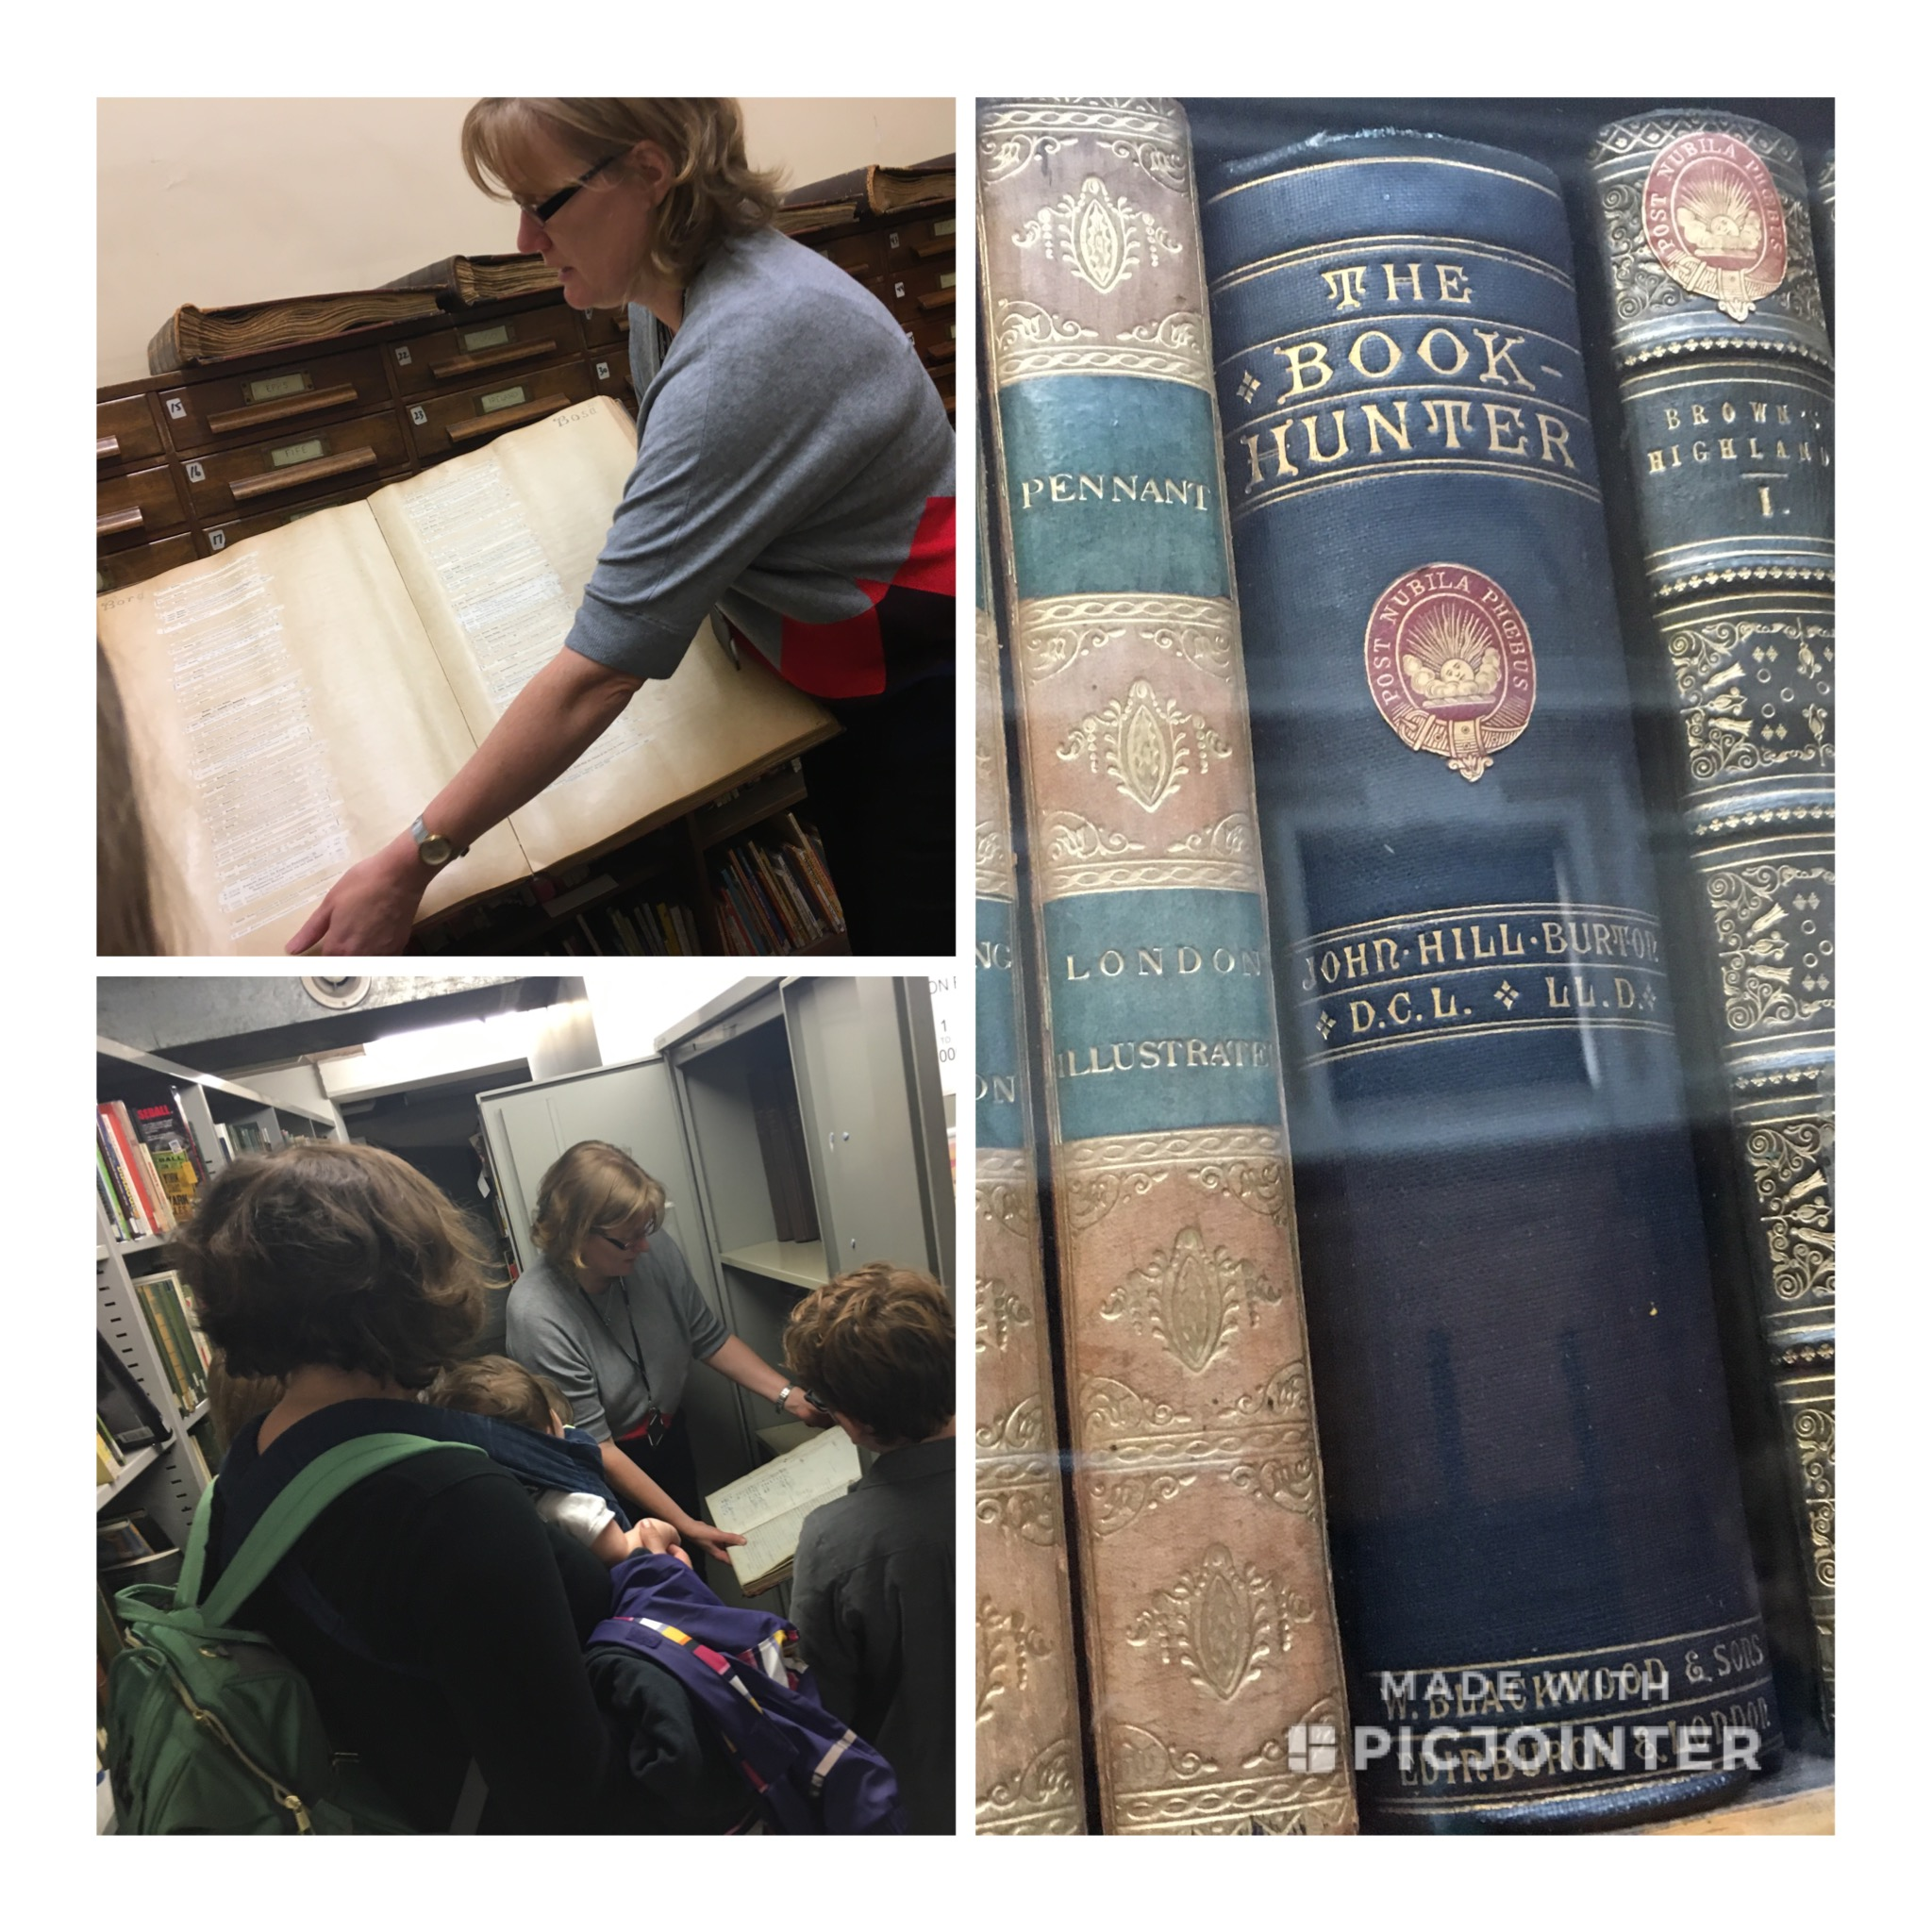 Behind the scenes at the Mitchell Library